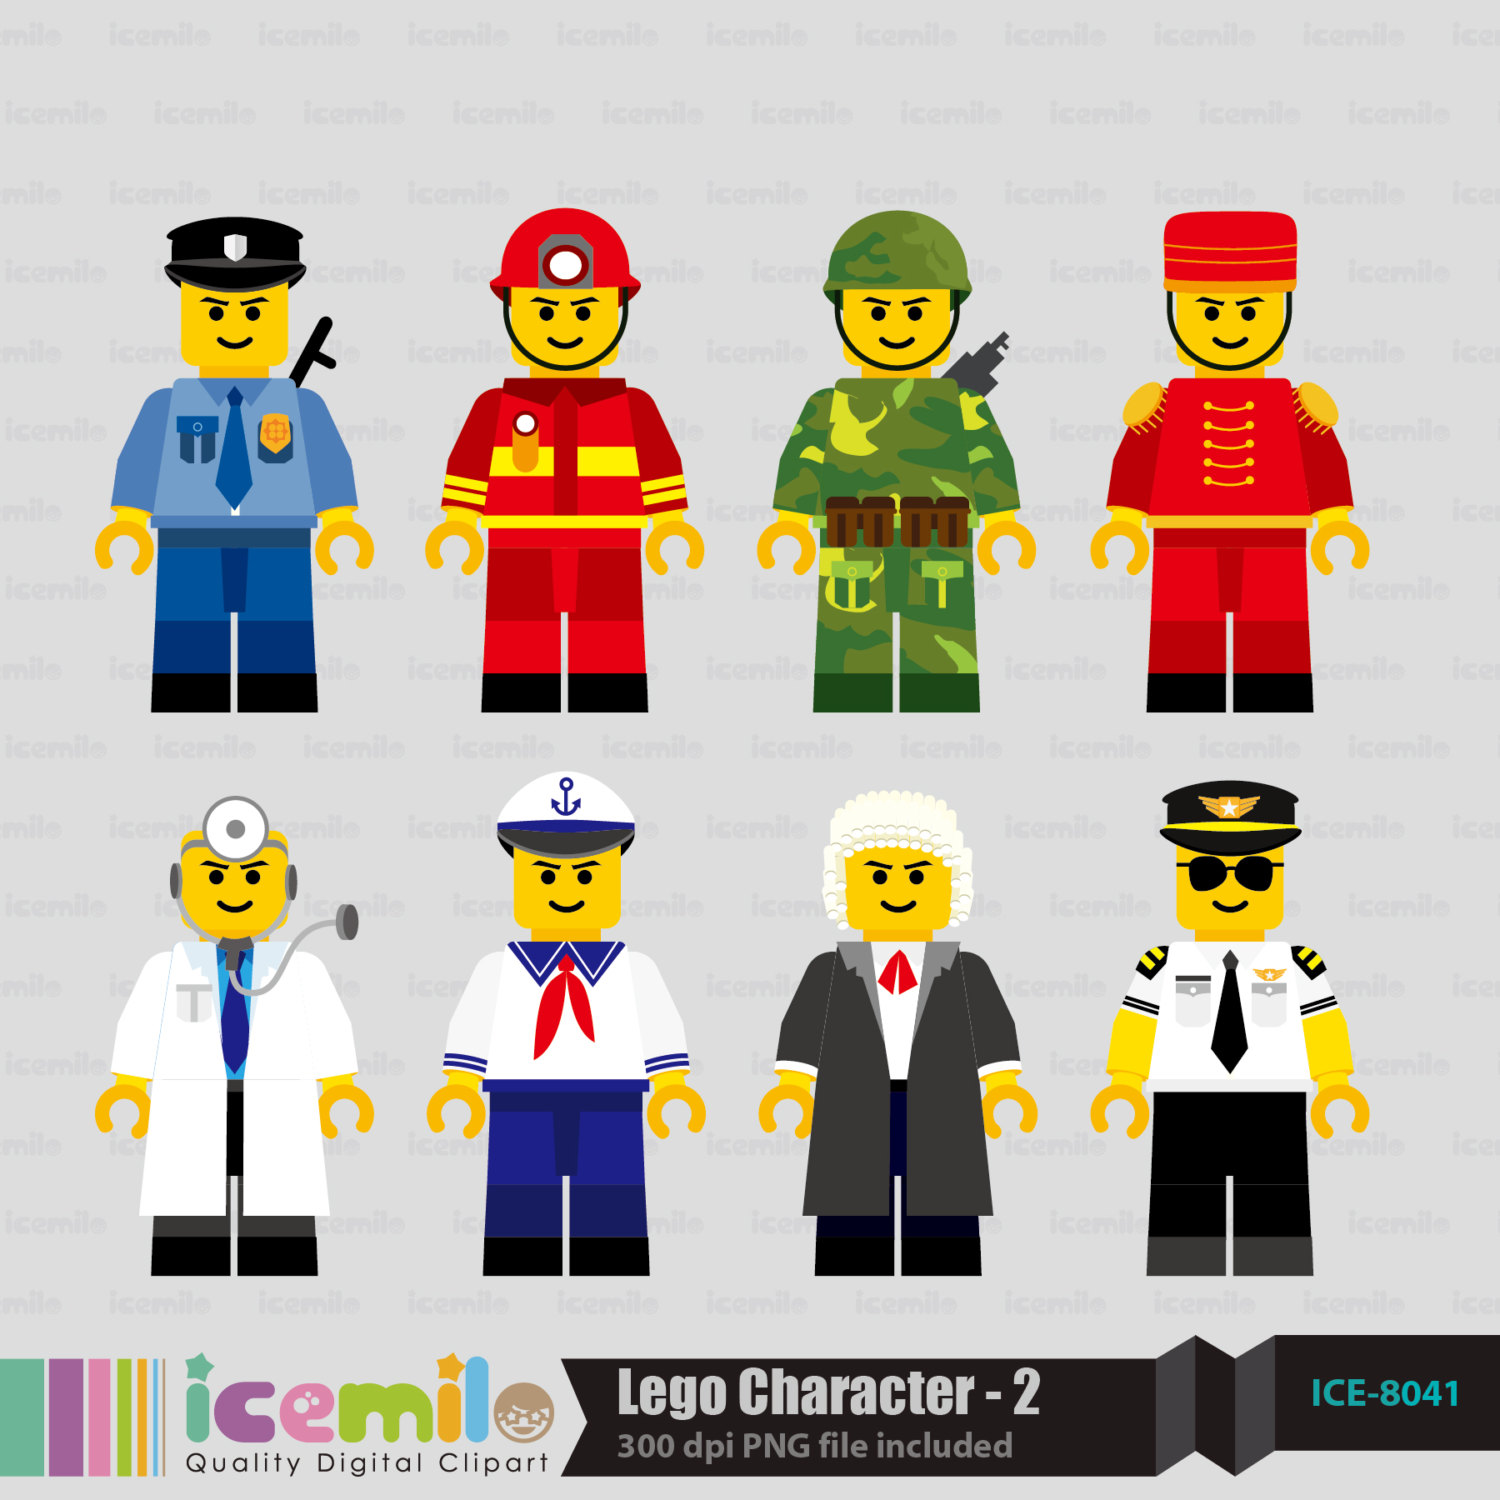 Lego man movie character clipart svg black and white library Lego man movie character clipart - ClipartFest svg black and white library